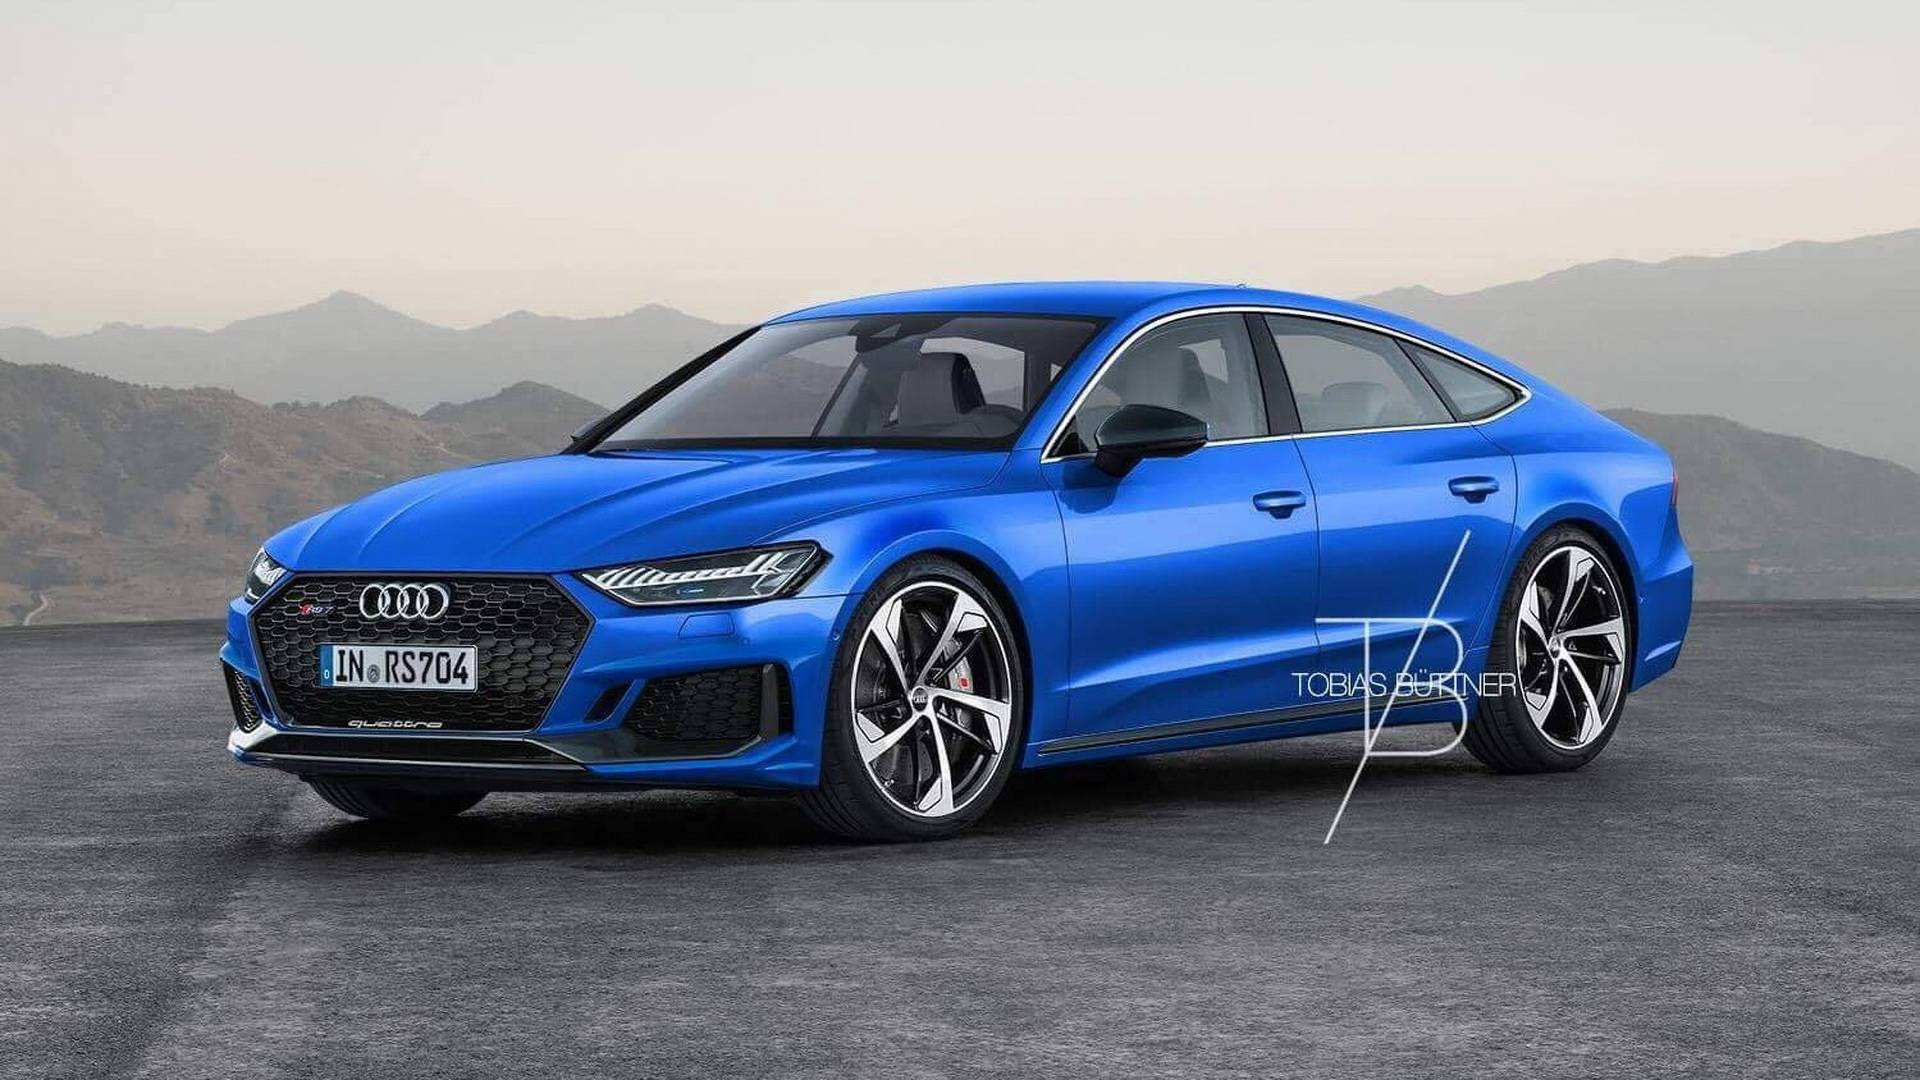 48 New 2020 Audi S7 Configurations for 2020 Audi S7